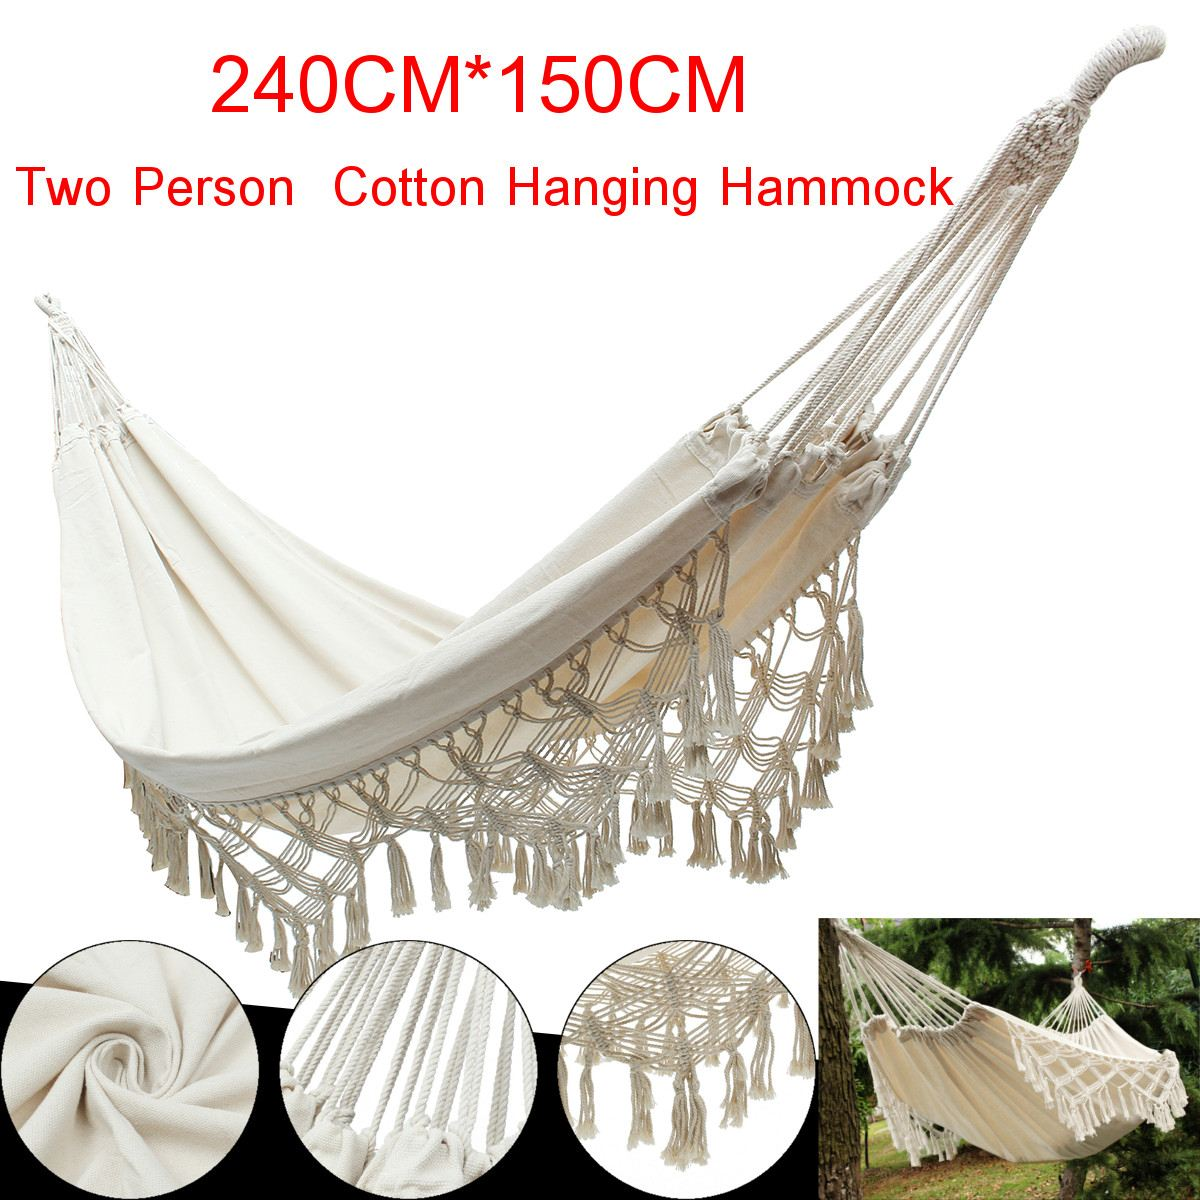 Thicken Double Hammock Chairs Swing Hanging Outdoor Camping Sleep Bed Dormitory Kids Hammock Hanging Chair Home Garden Cotton